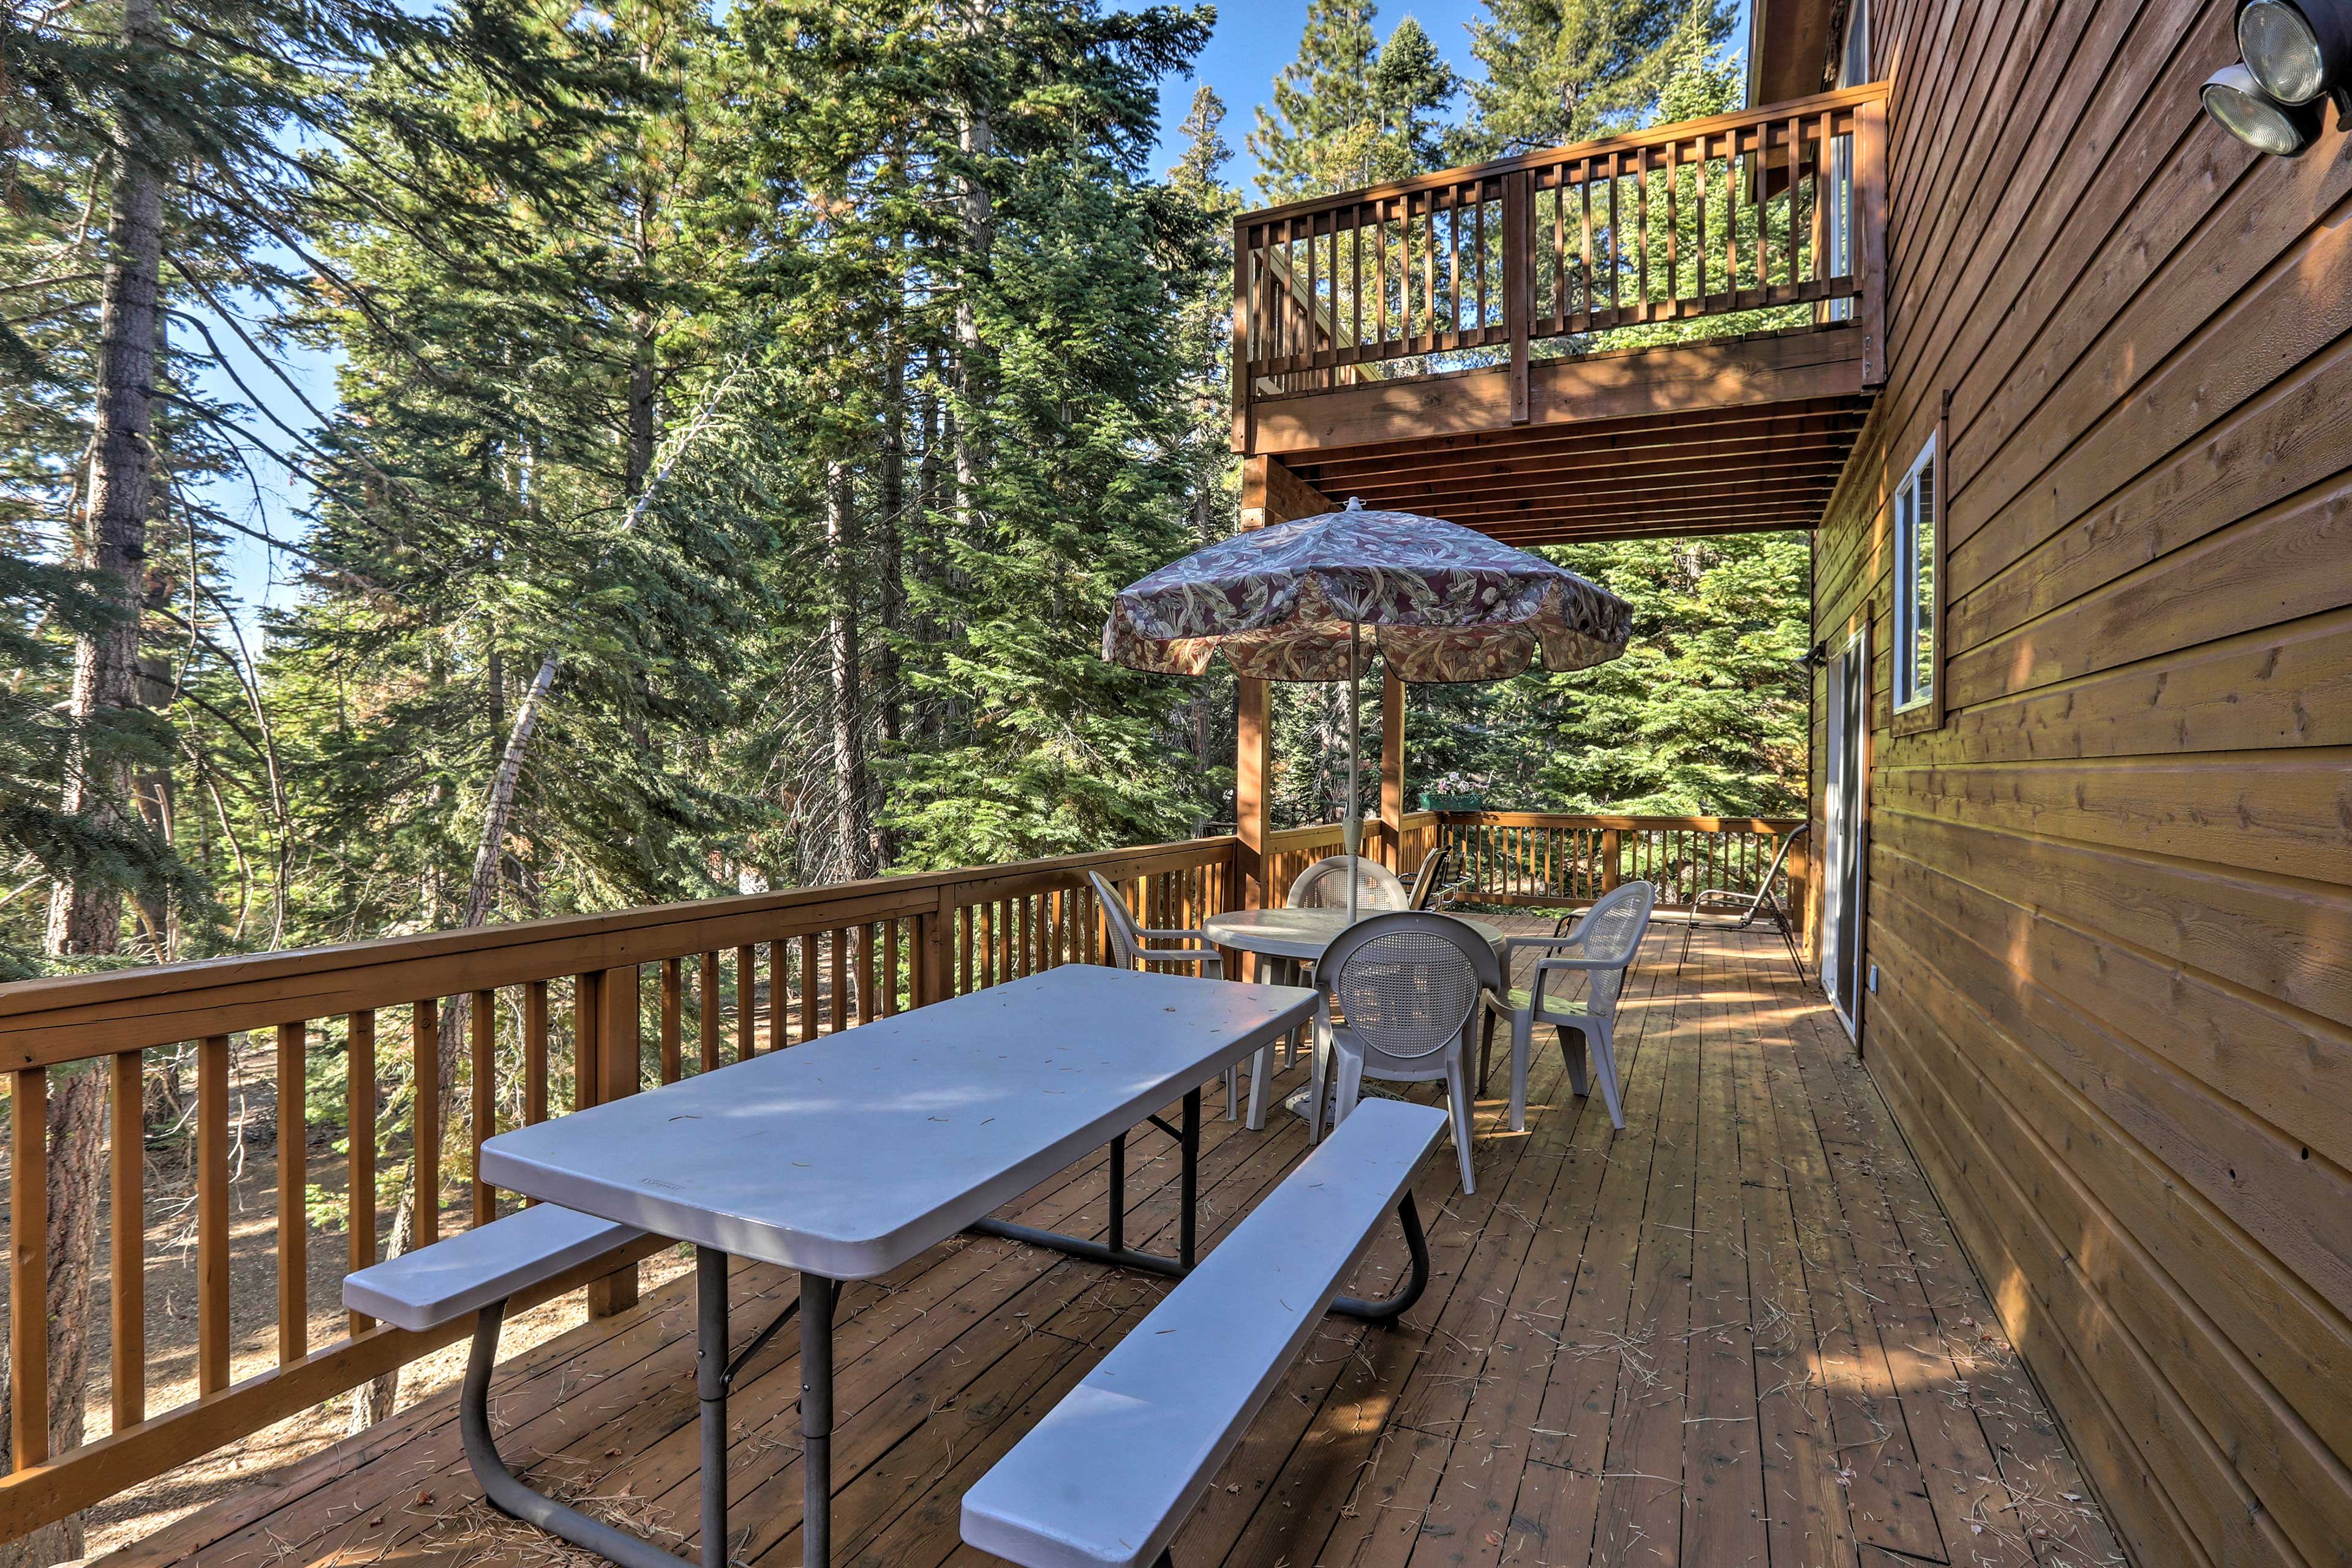 Dine al fresco at either the picnic table or outdoor dining area.